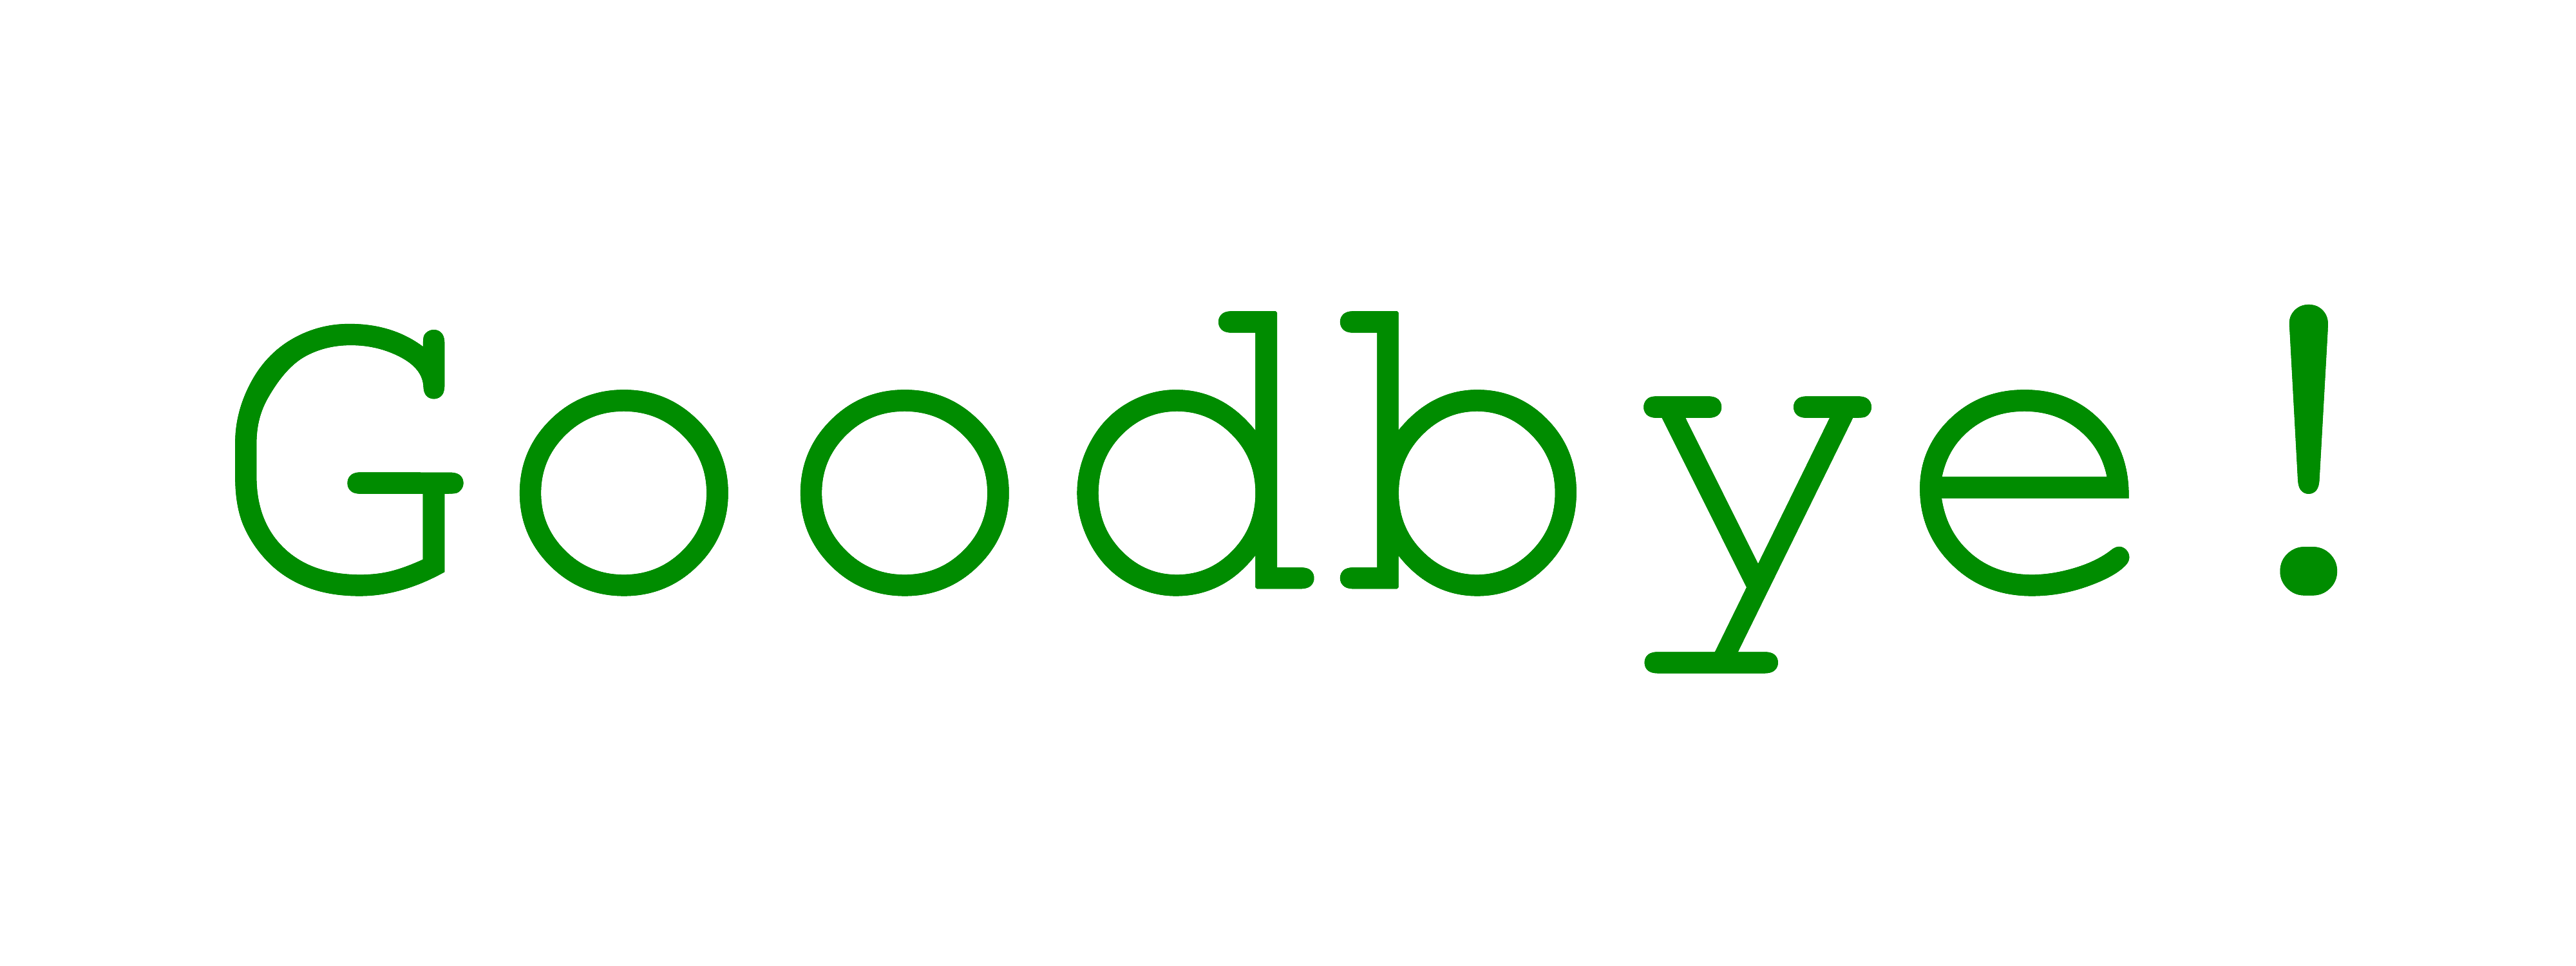 Goodbye png images free. March clipart good bye